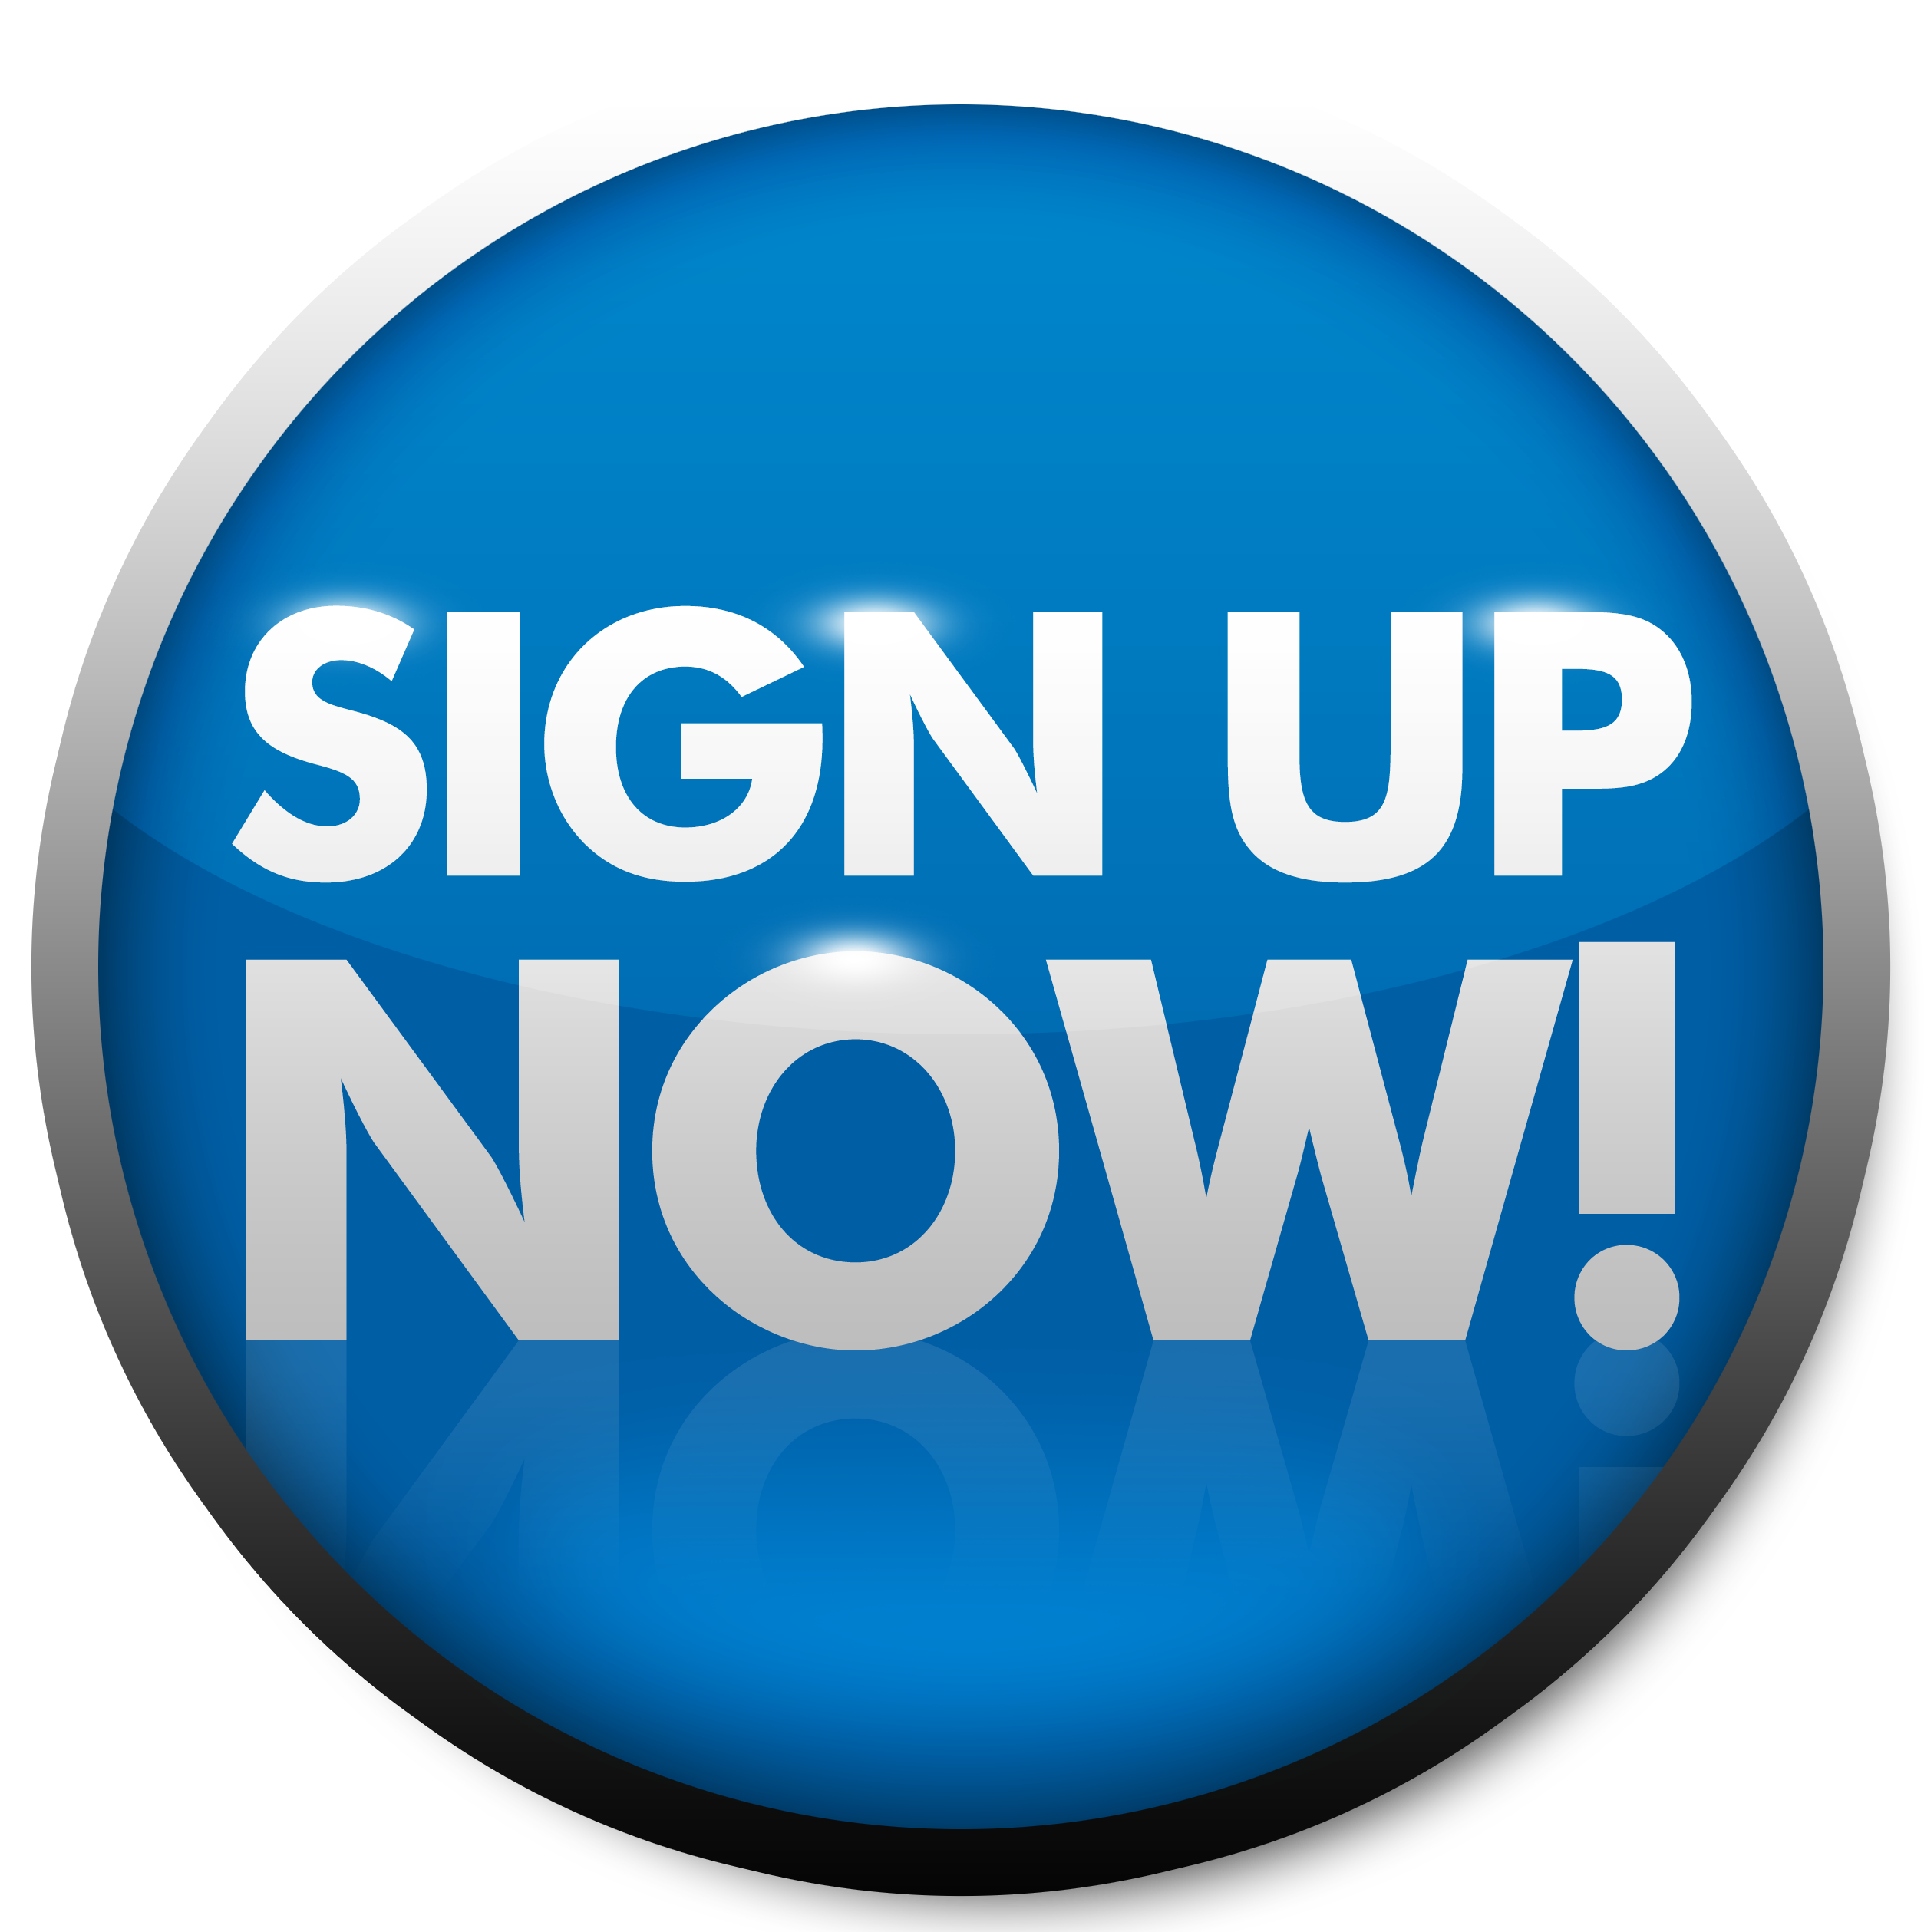 Number 1 clipart 1blue. Blue button sign up